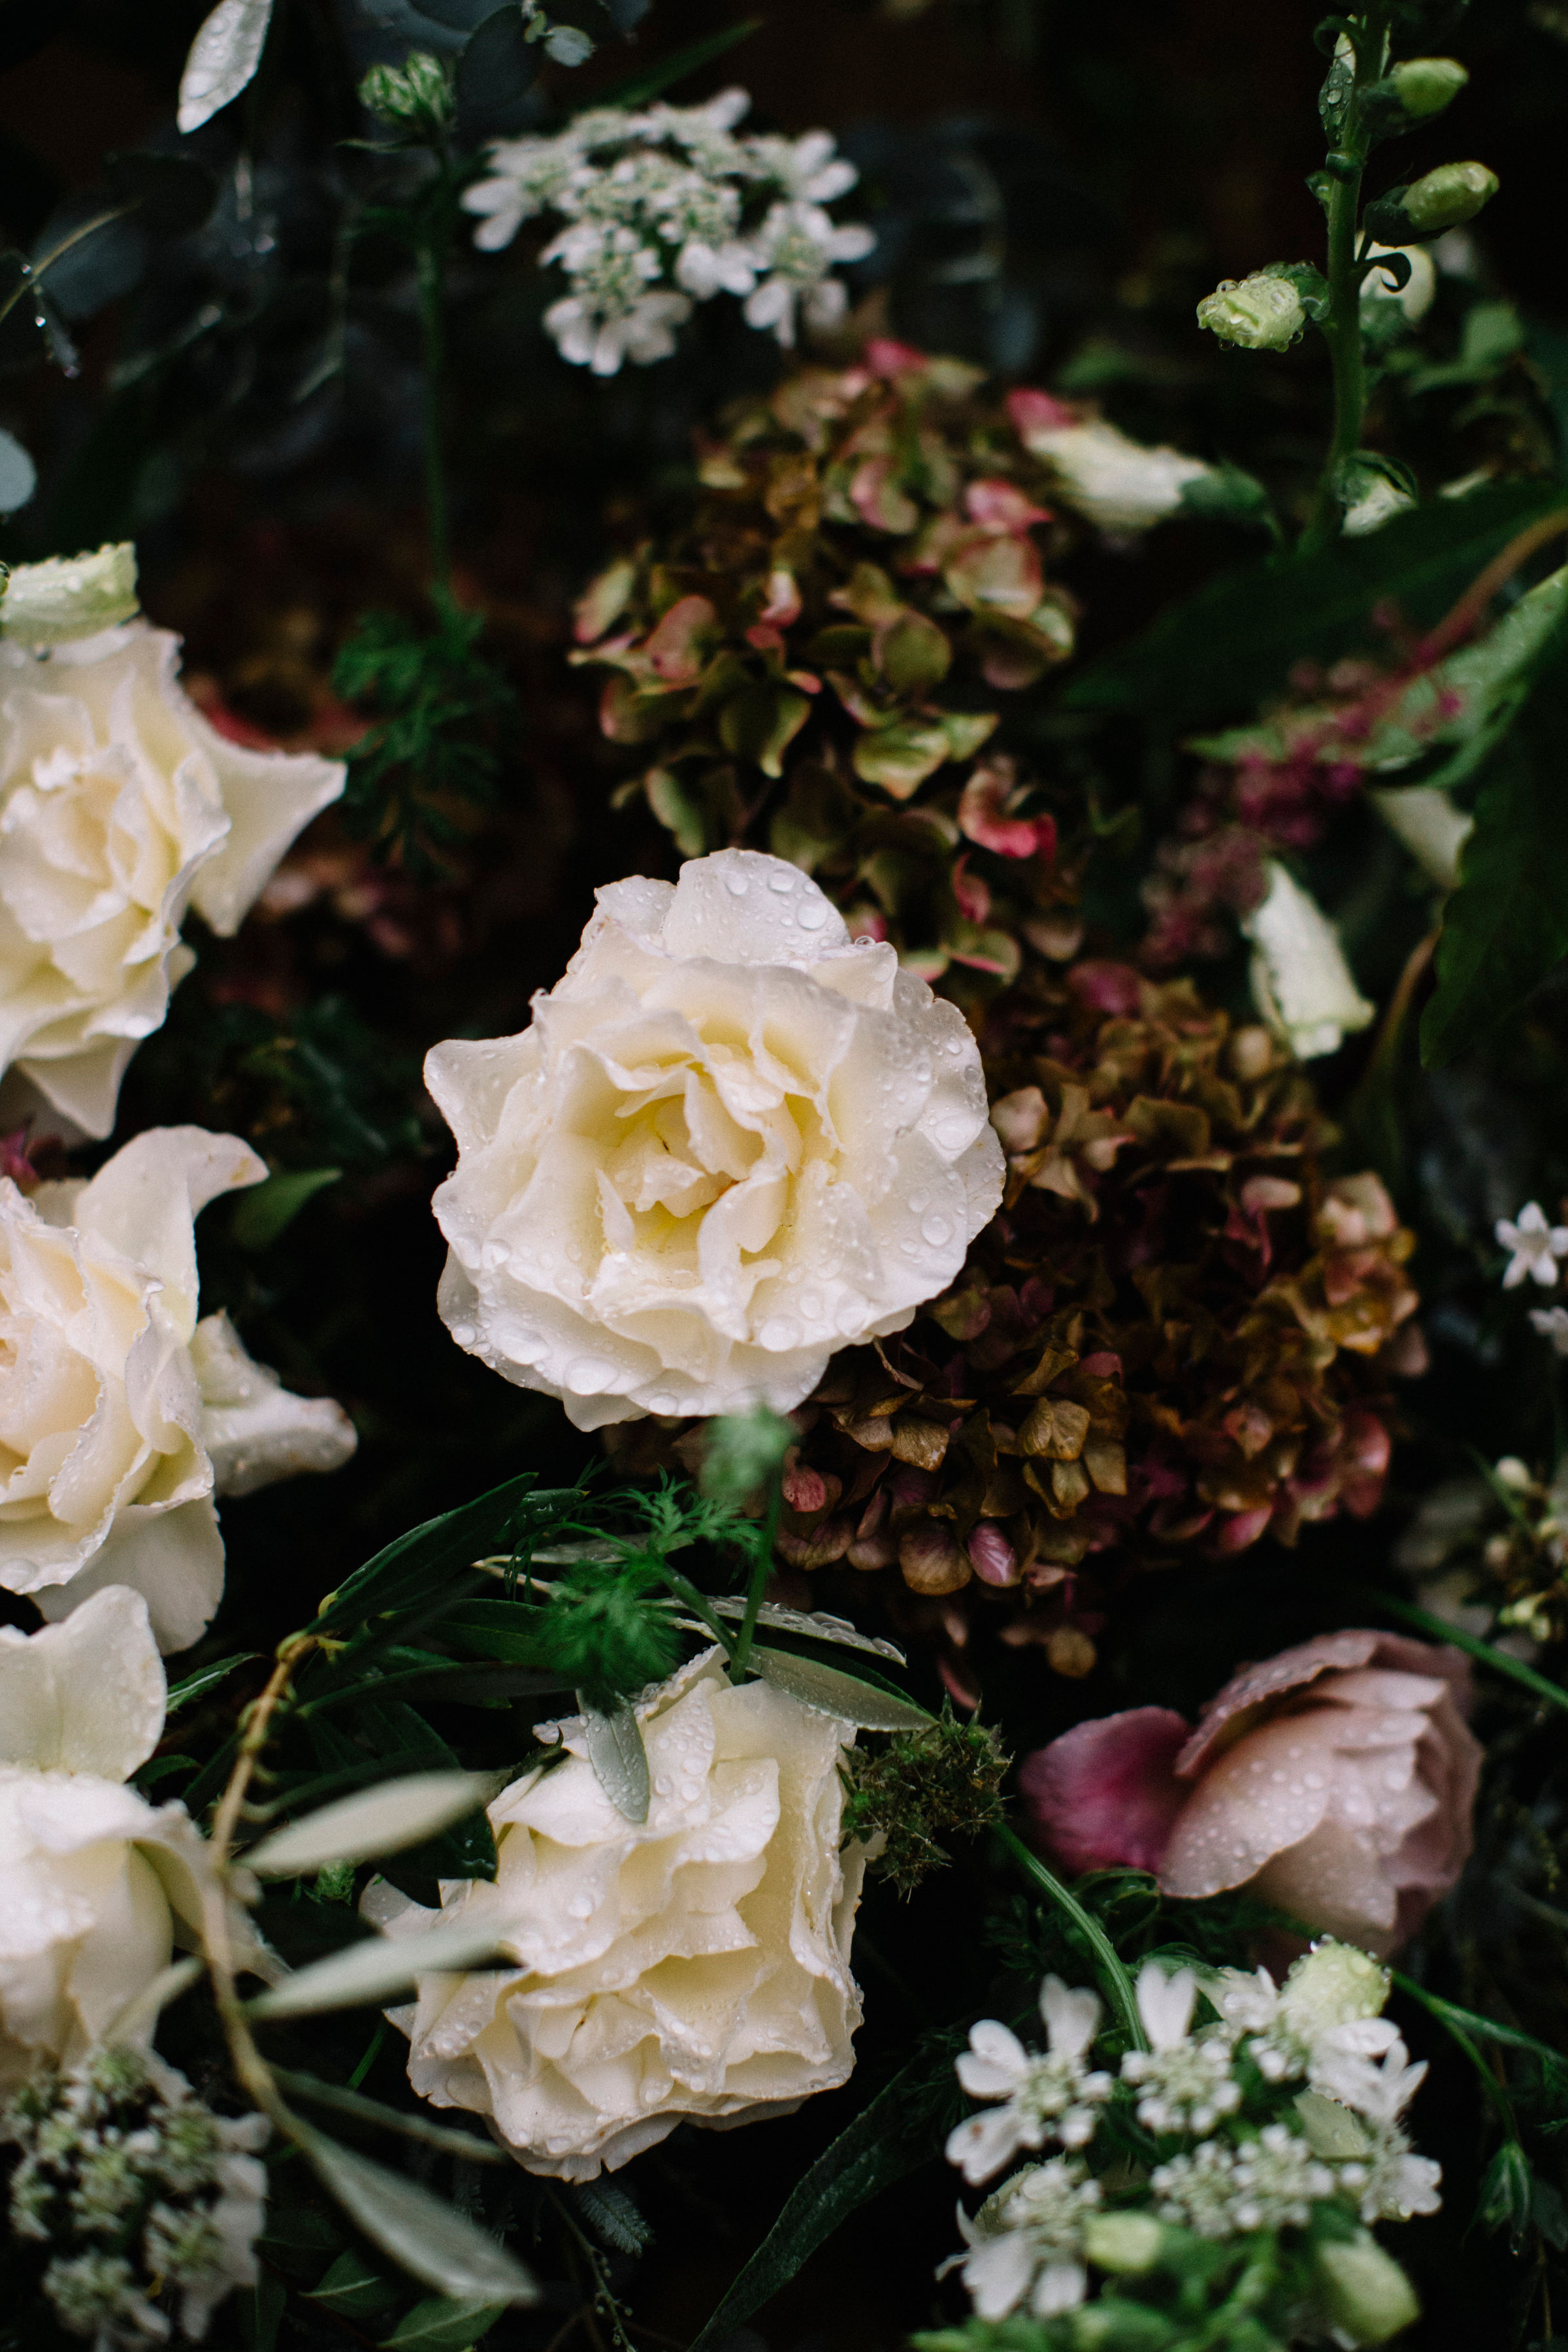 Moody wedding flower inspiration in Healdsburg by Venn Floral photographed by Lucille Lawrence at Ru's Farm with Cristina Heald.